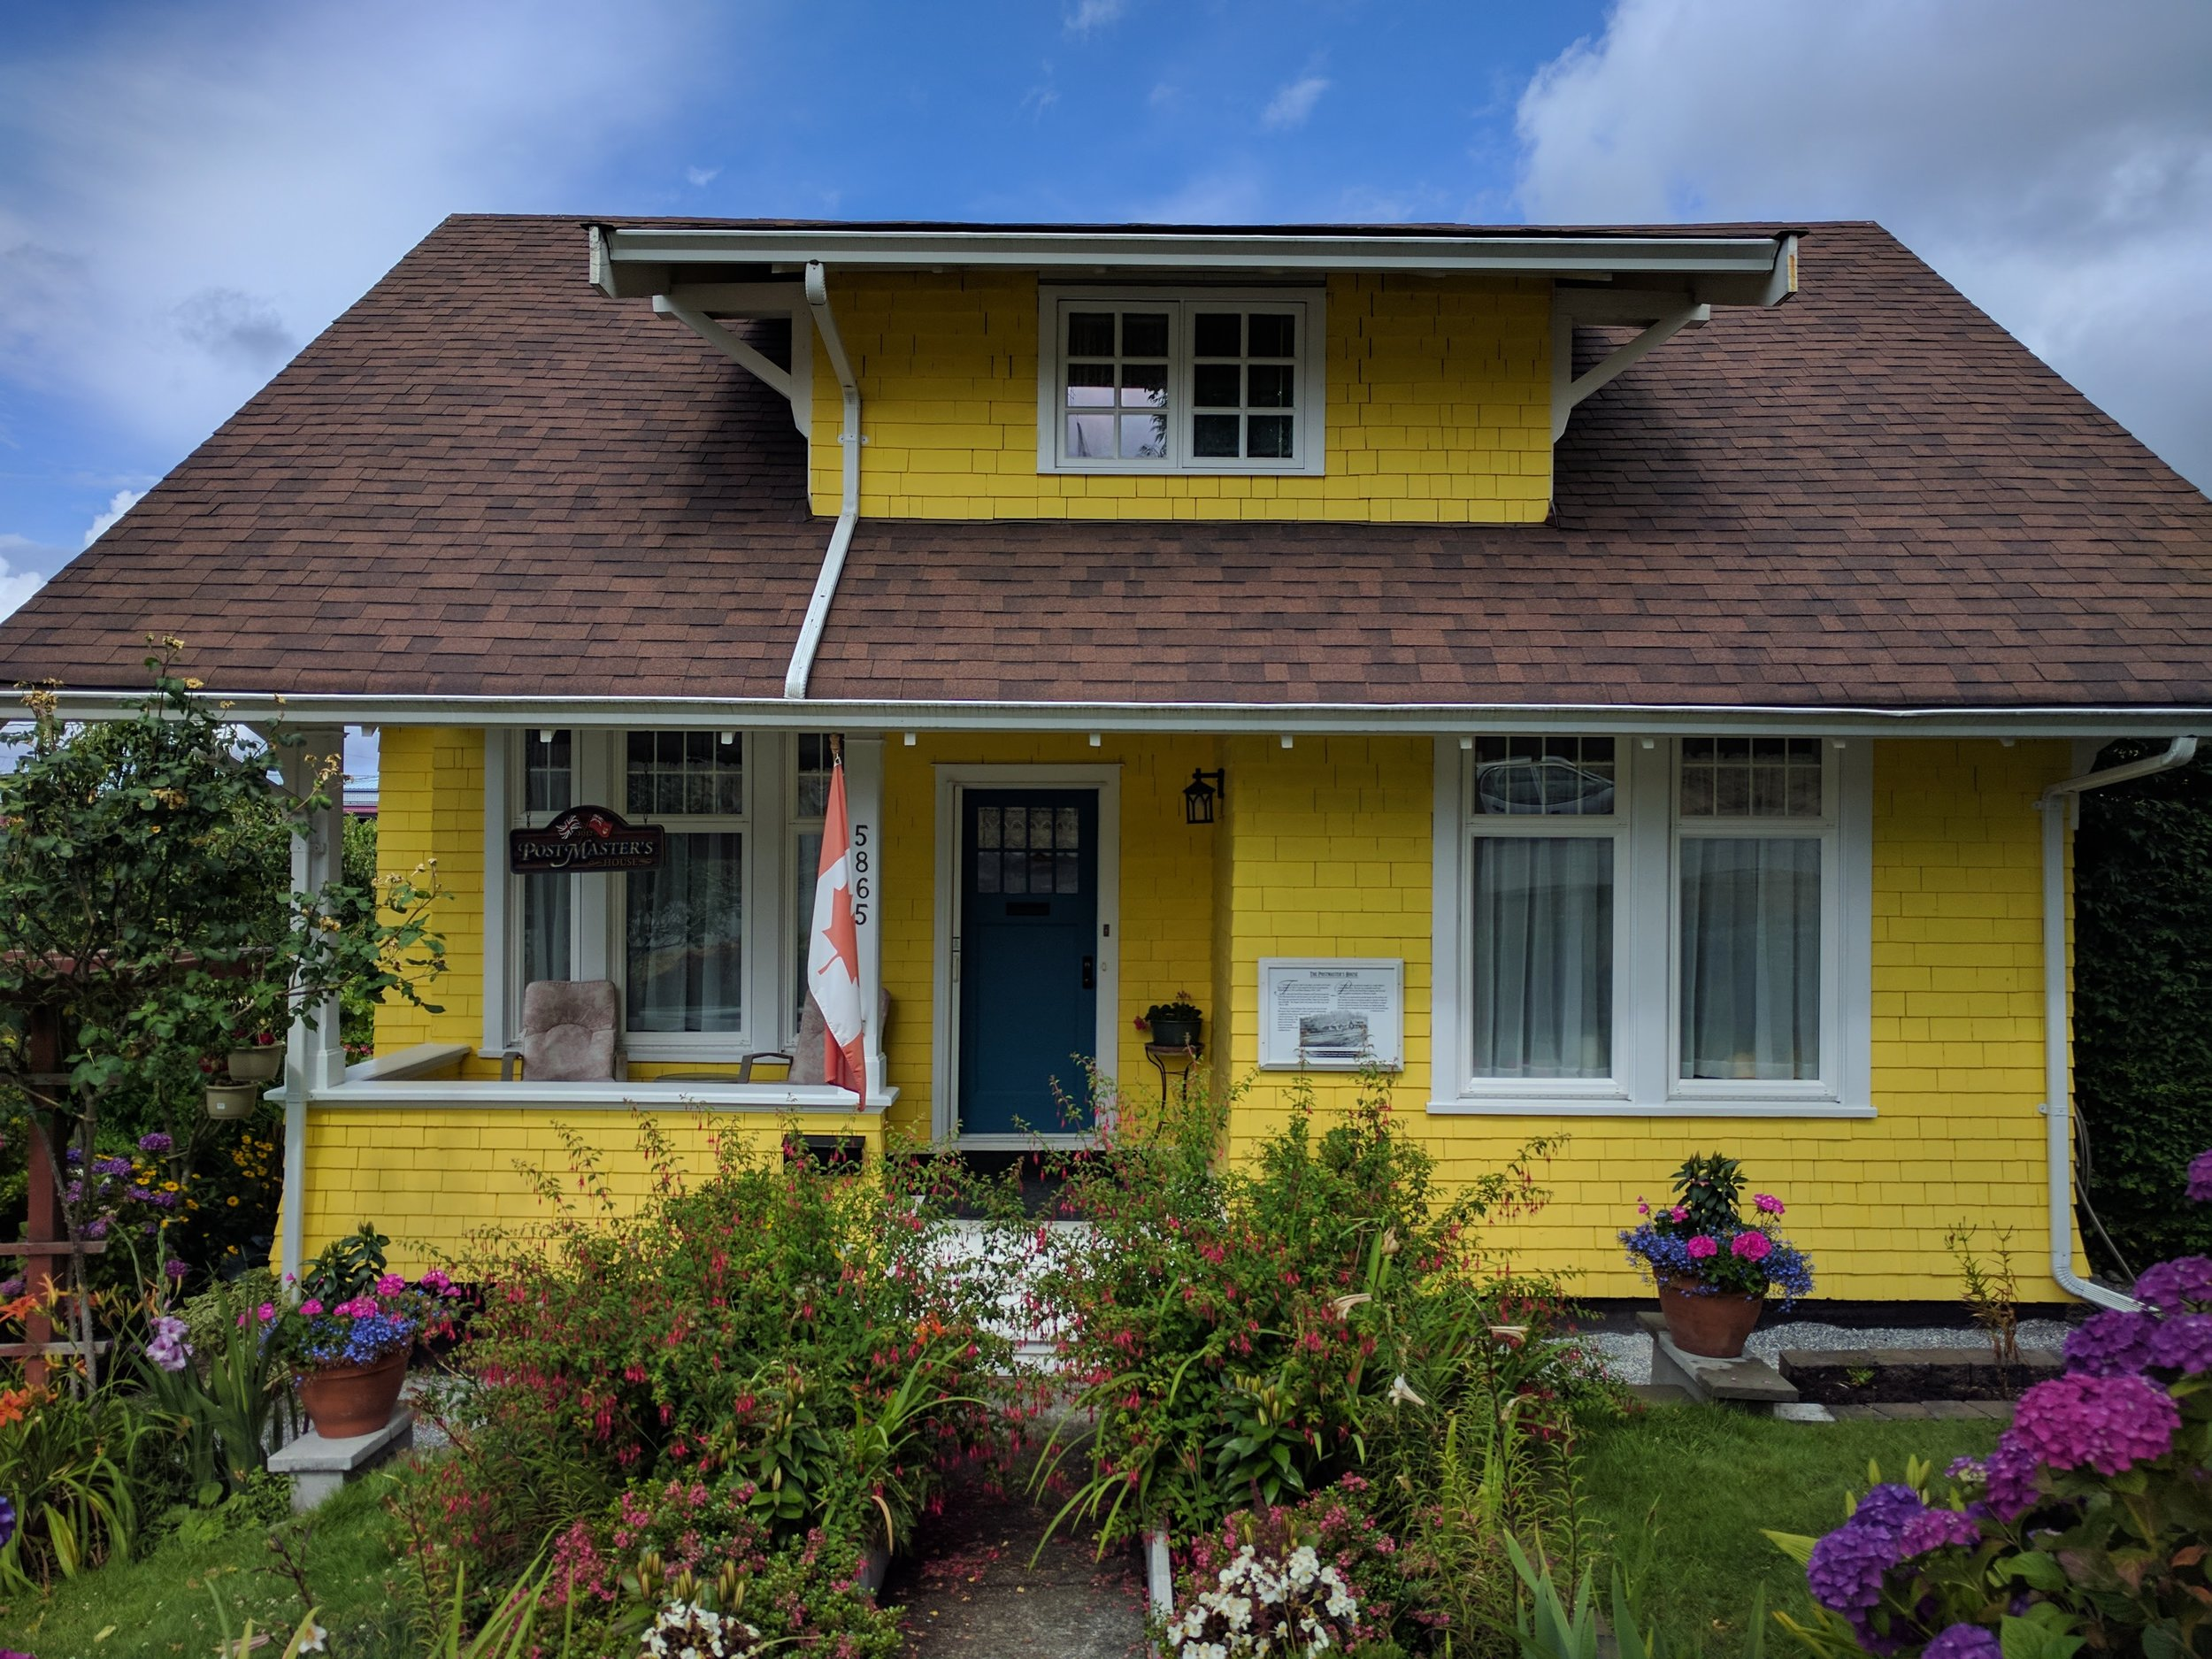 A beautiful example of the Arts and Crafts houses in the Townsite.